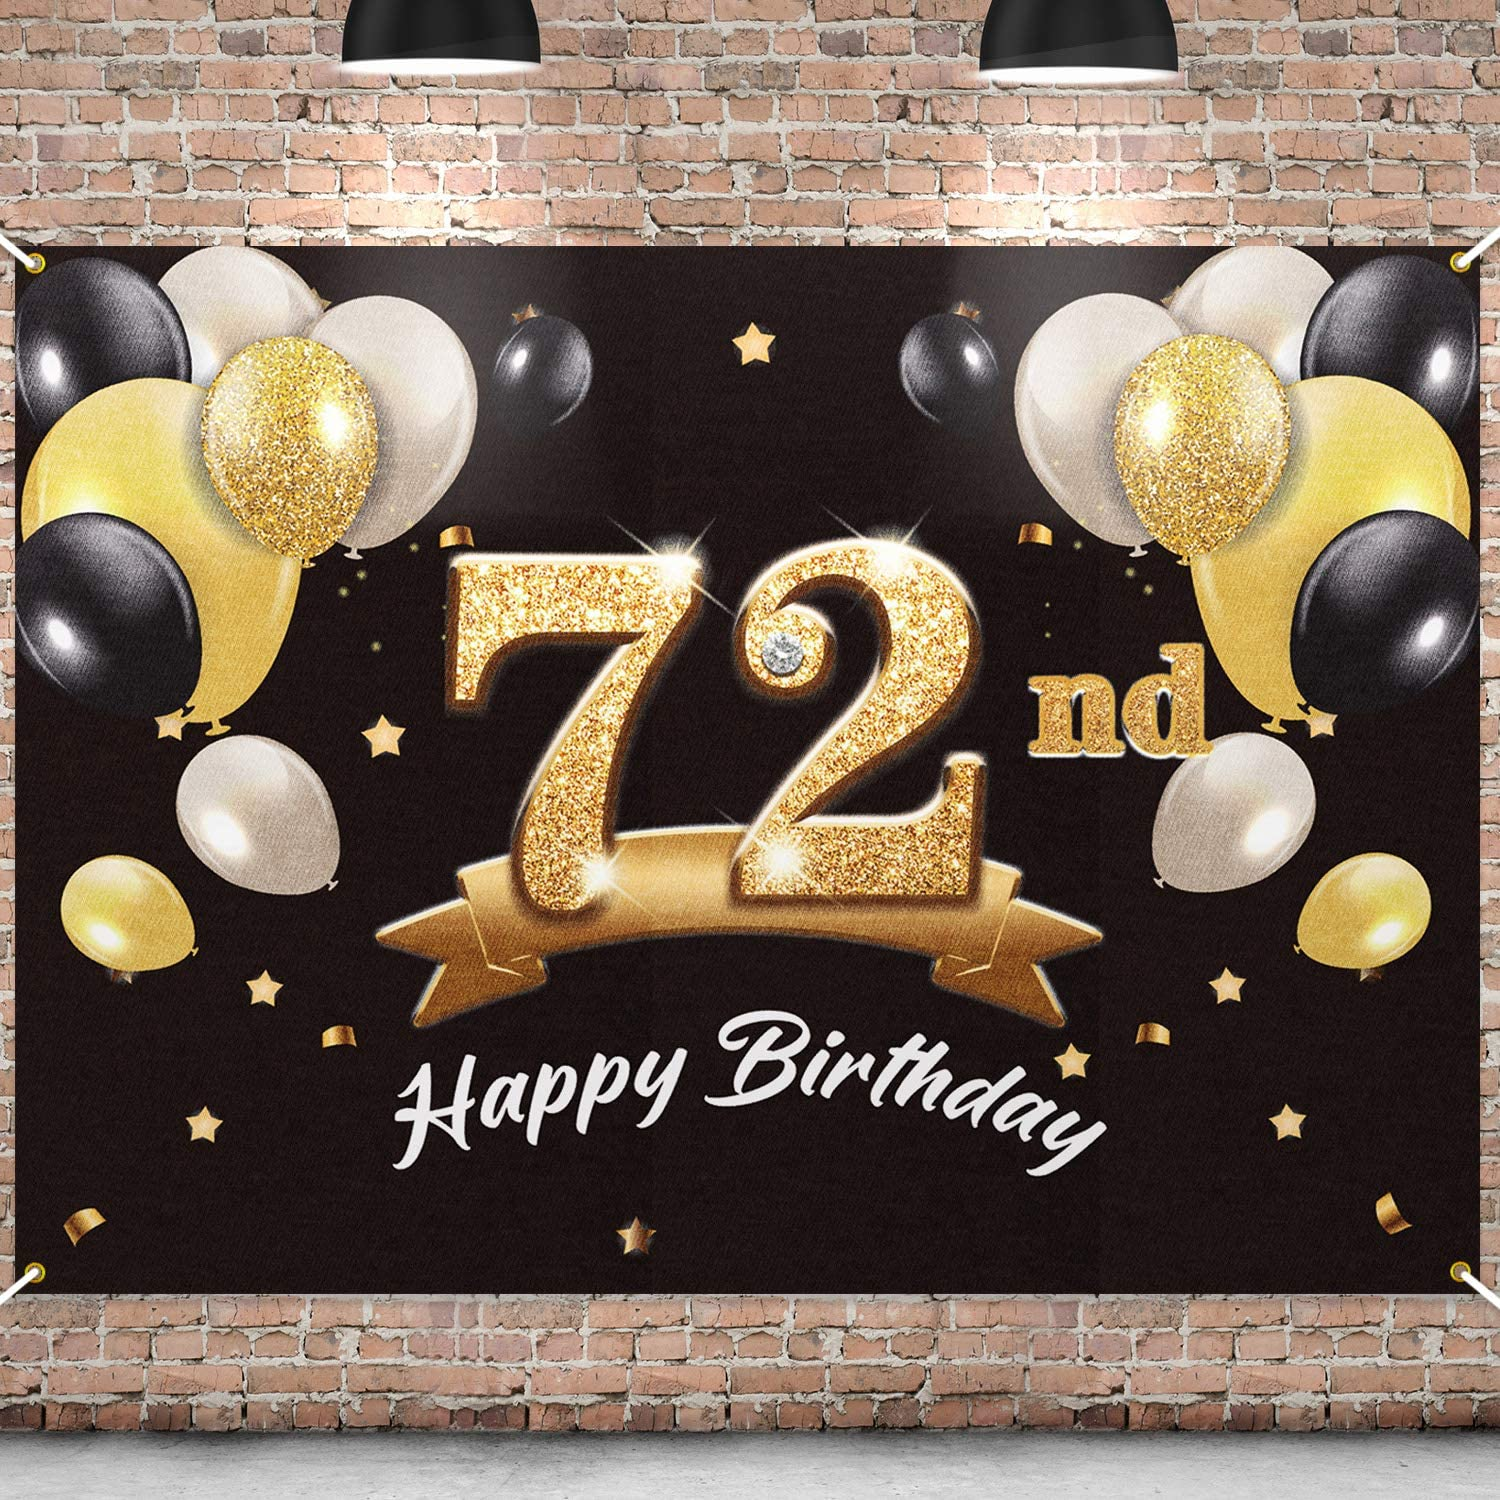 Lowest price Popular products challenge PAKBOOM Happy 72nd Birthday Banner Backdrop - 72 Party